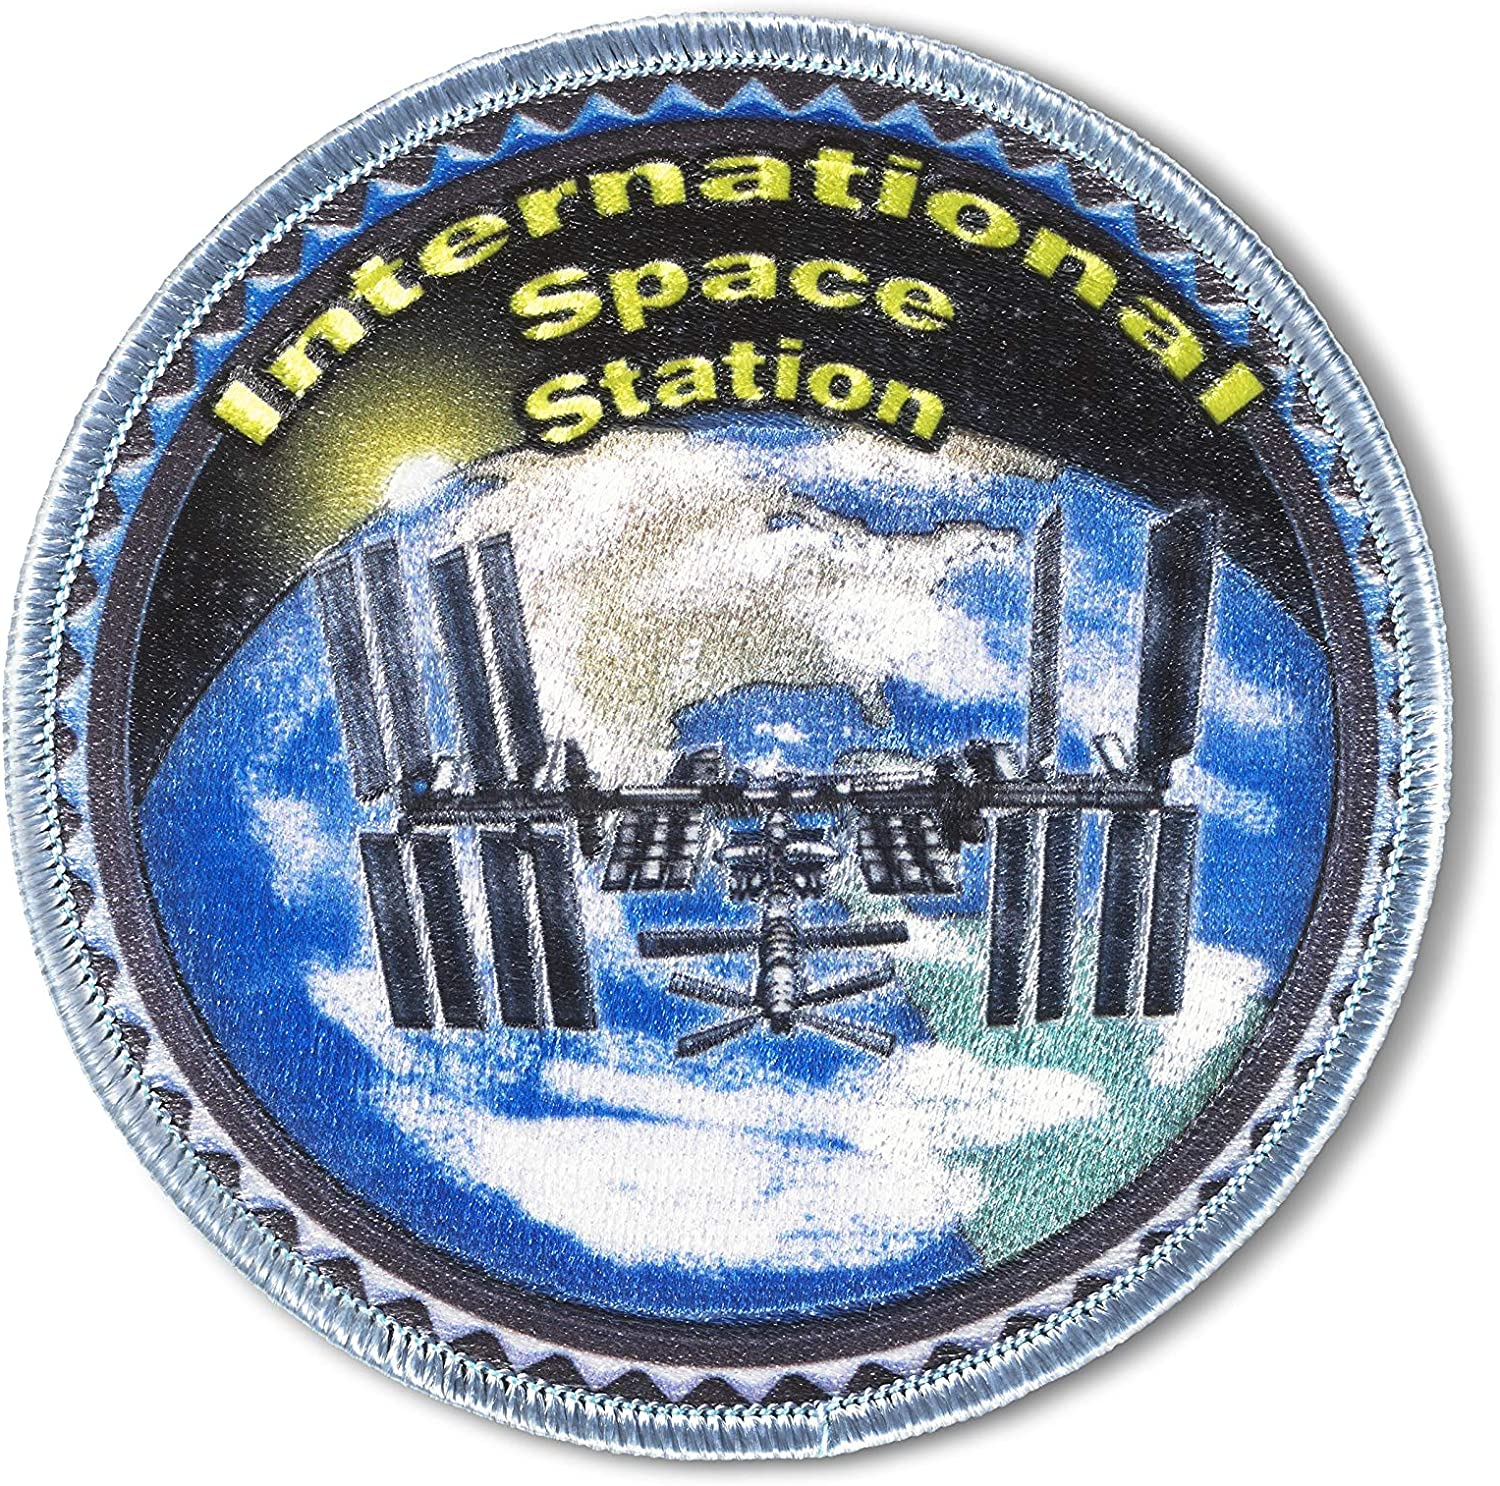 Spartan Bargain sale and The Green Egg Space Explorer Patch Popular brand Embroidered Outer